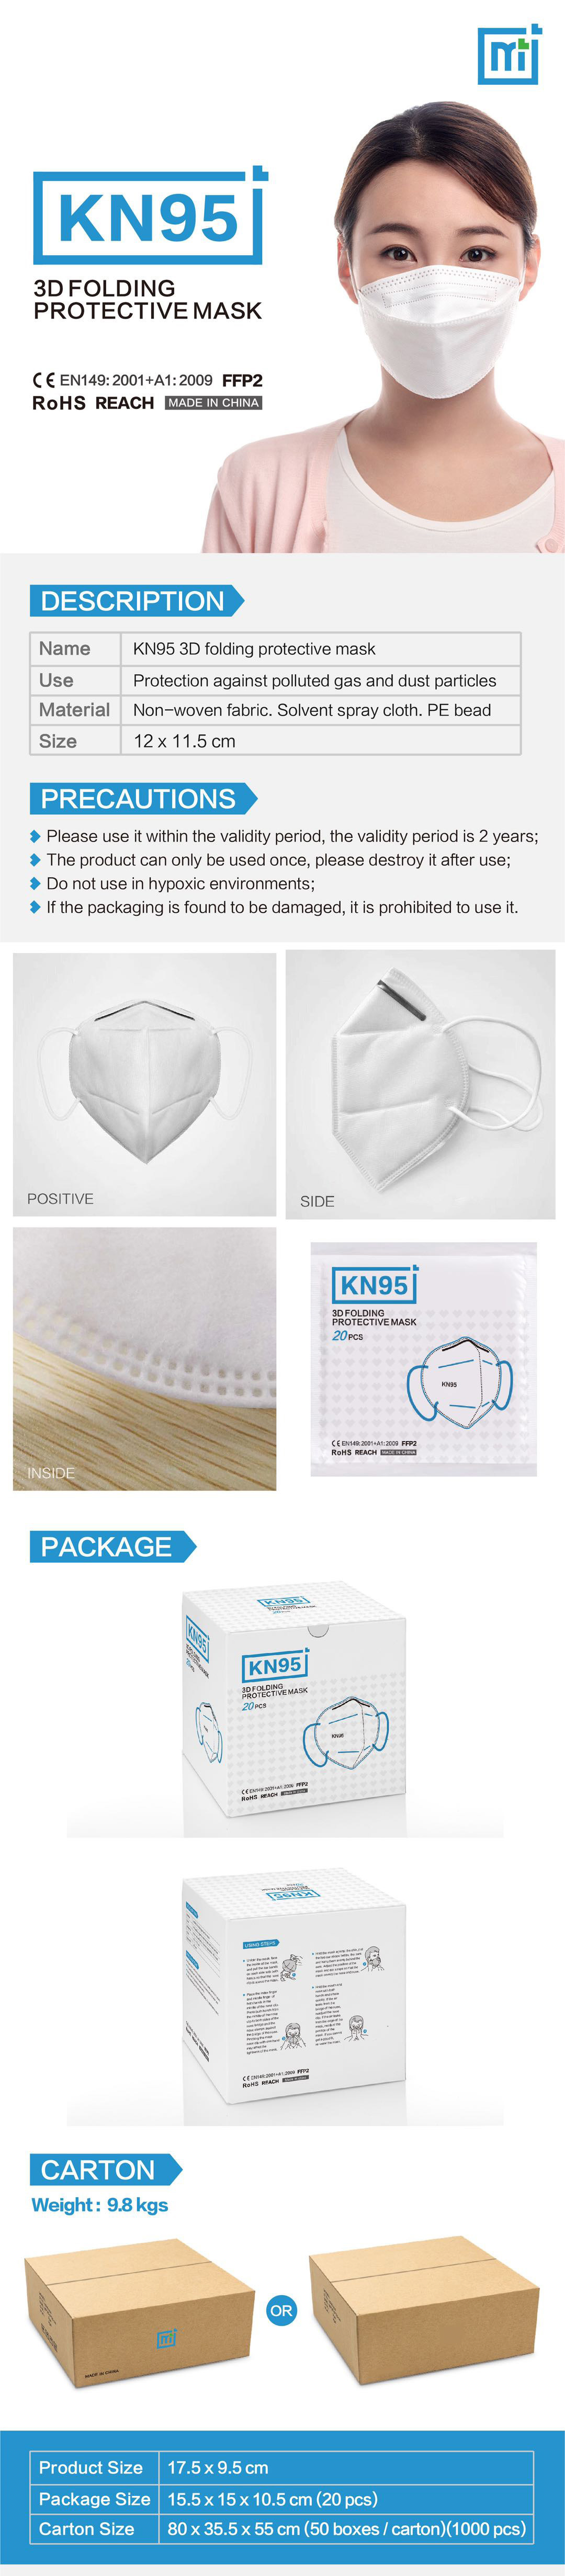 Disposable KN95 Mask